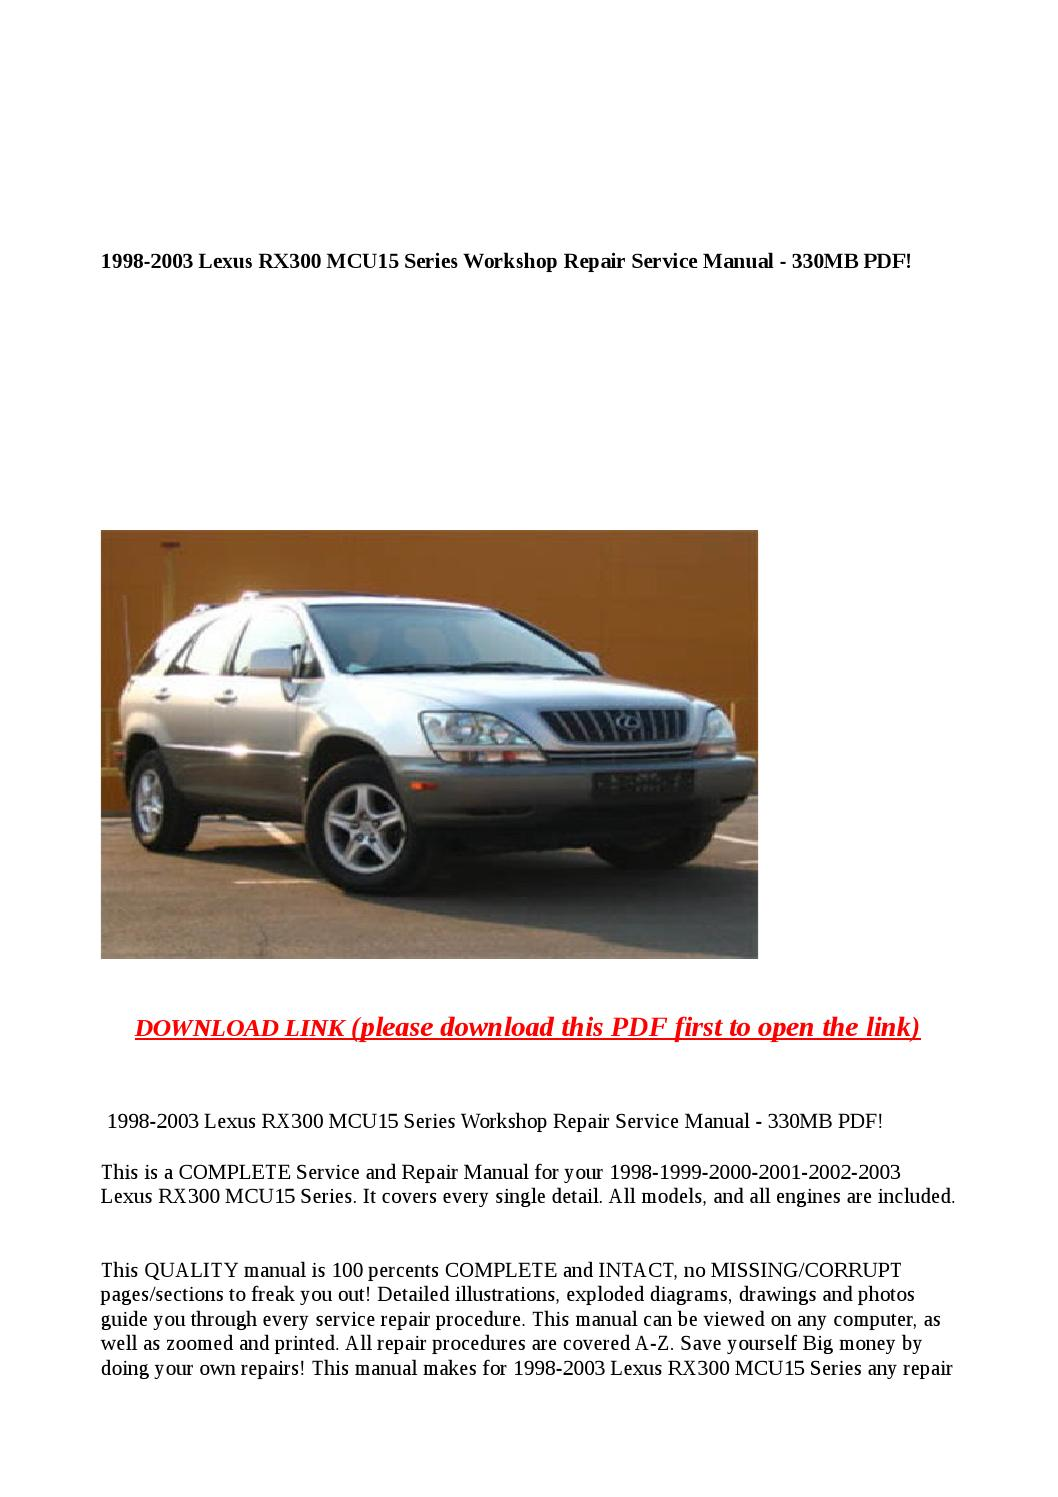 2001 lexus rx300 owners manual pdf